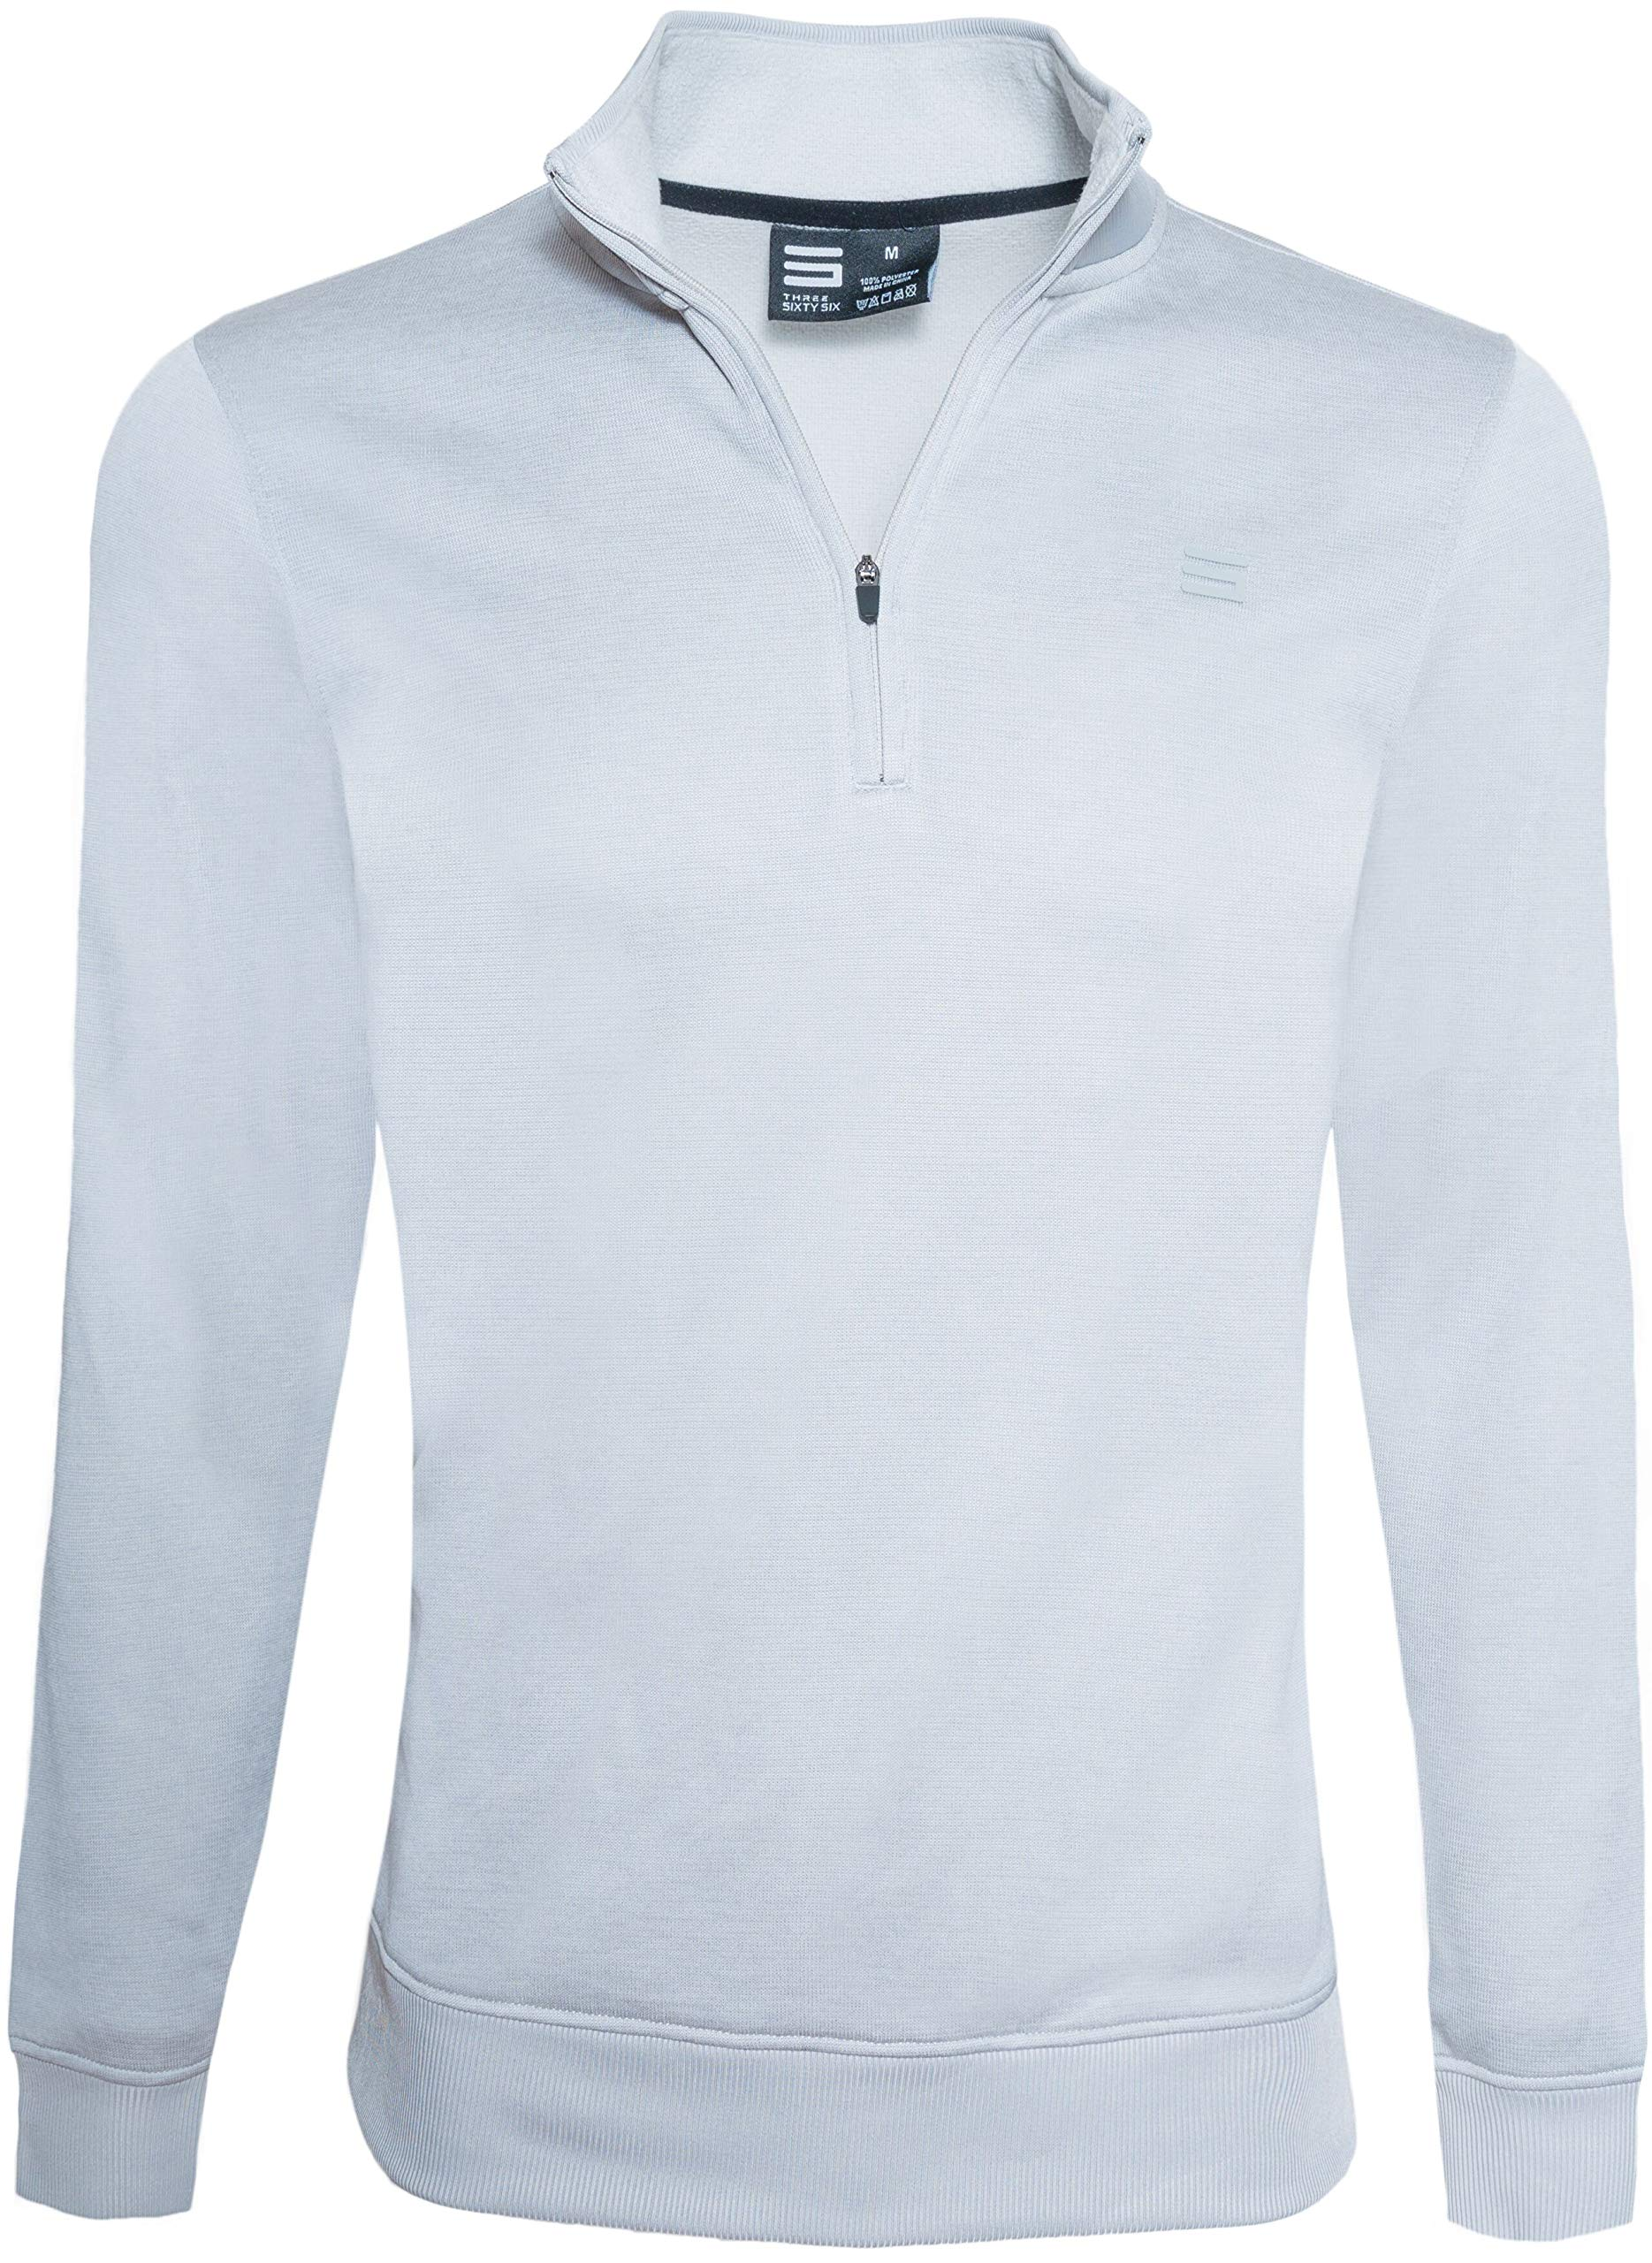 Dry Fit Pullover Sweaters for Men - Quarter Zip Fleece Golf Jacket - Tailored Fit Light Grey by Three Sixty Six